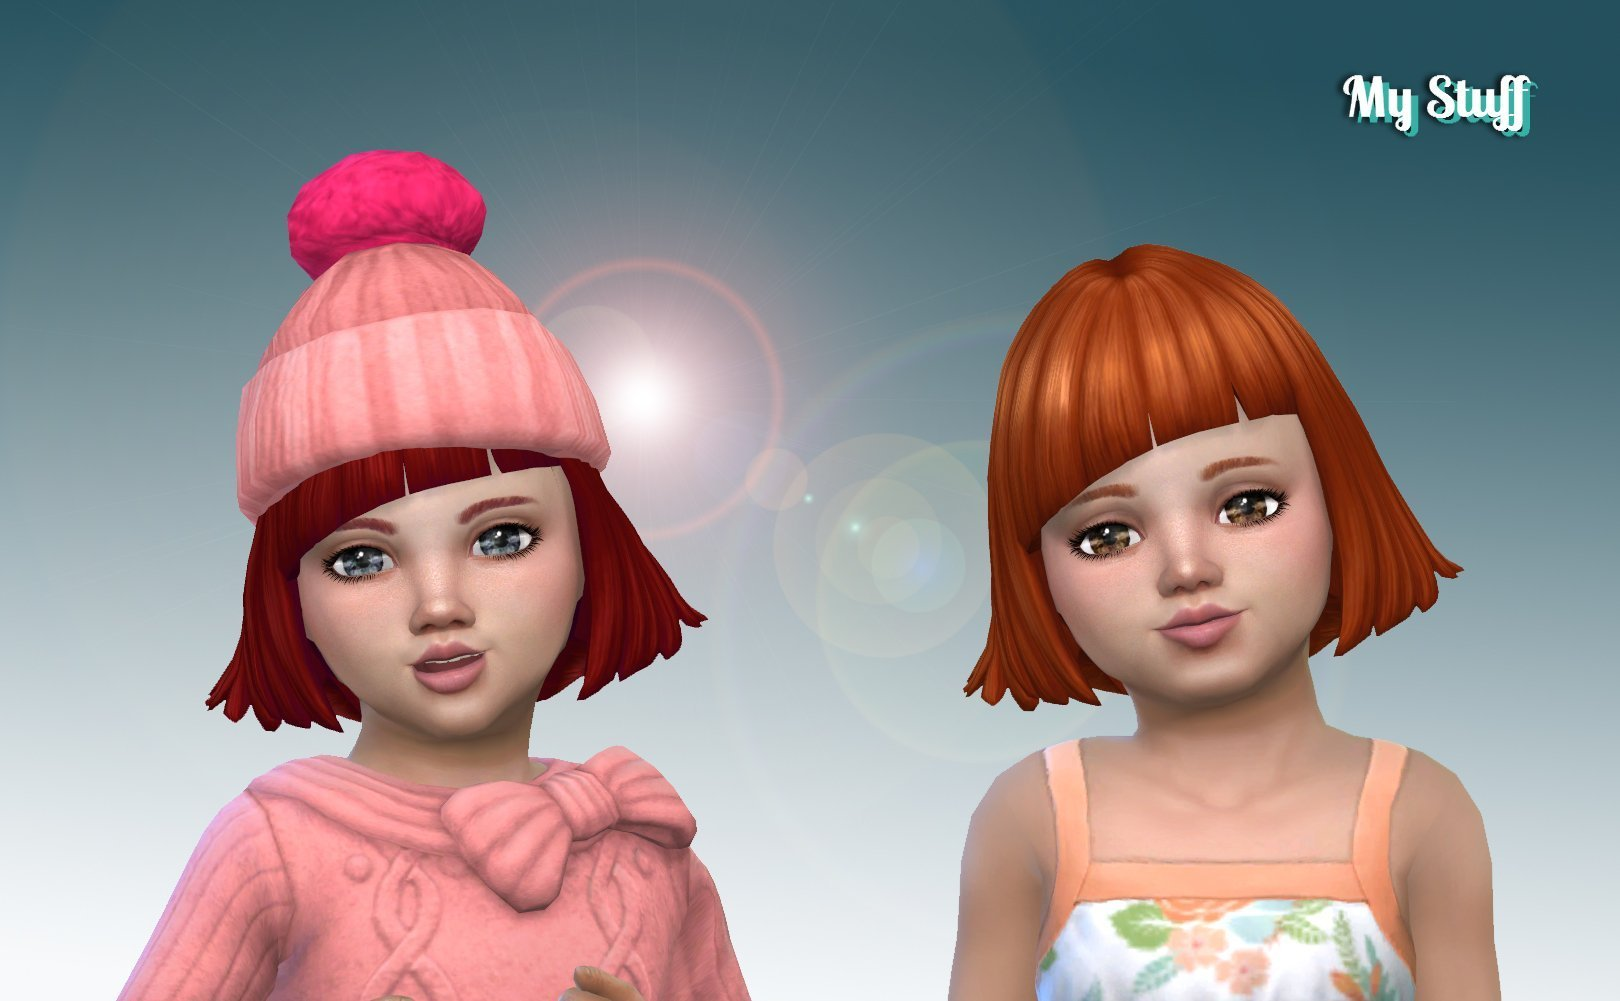 Chopped Bob for Toddlers